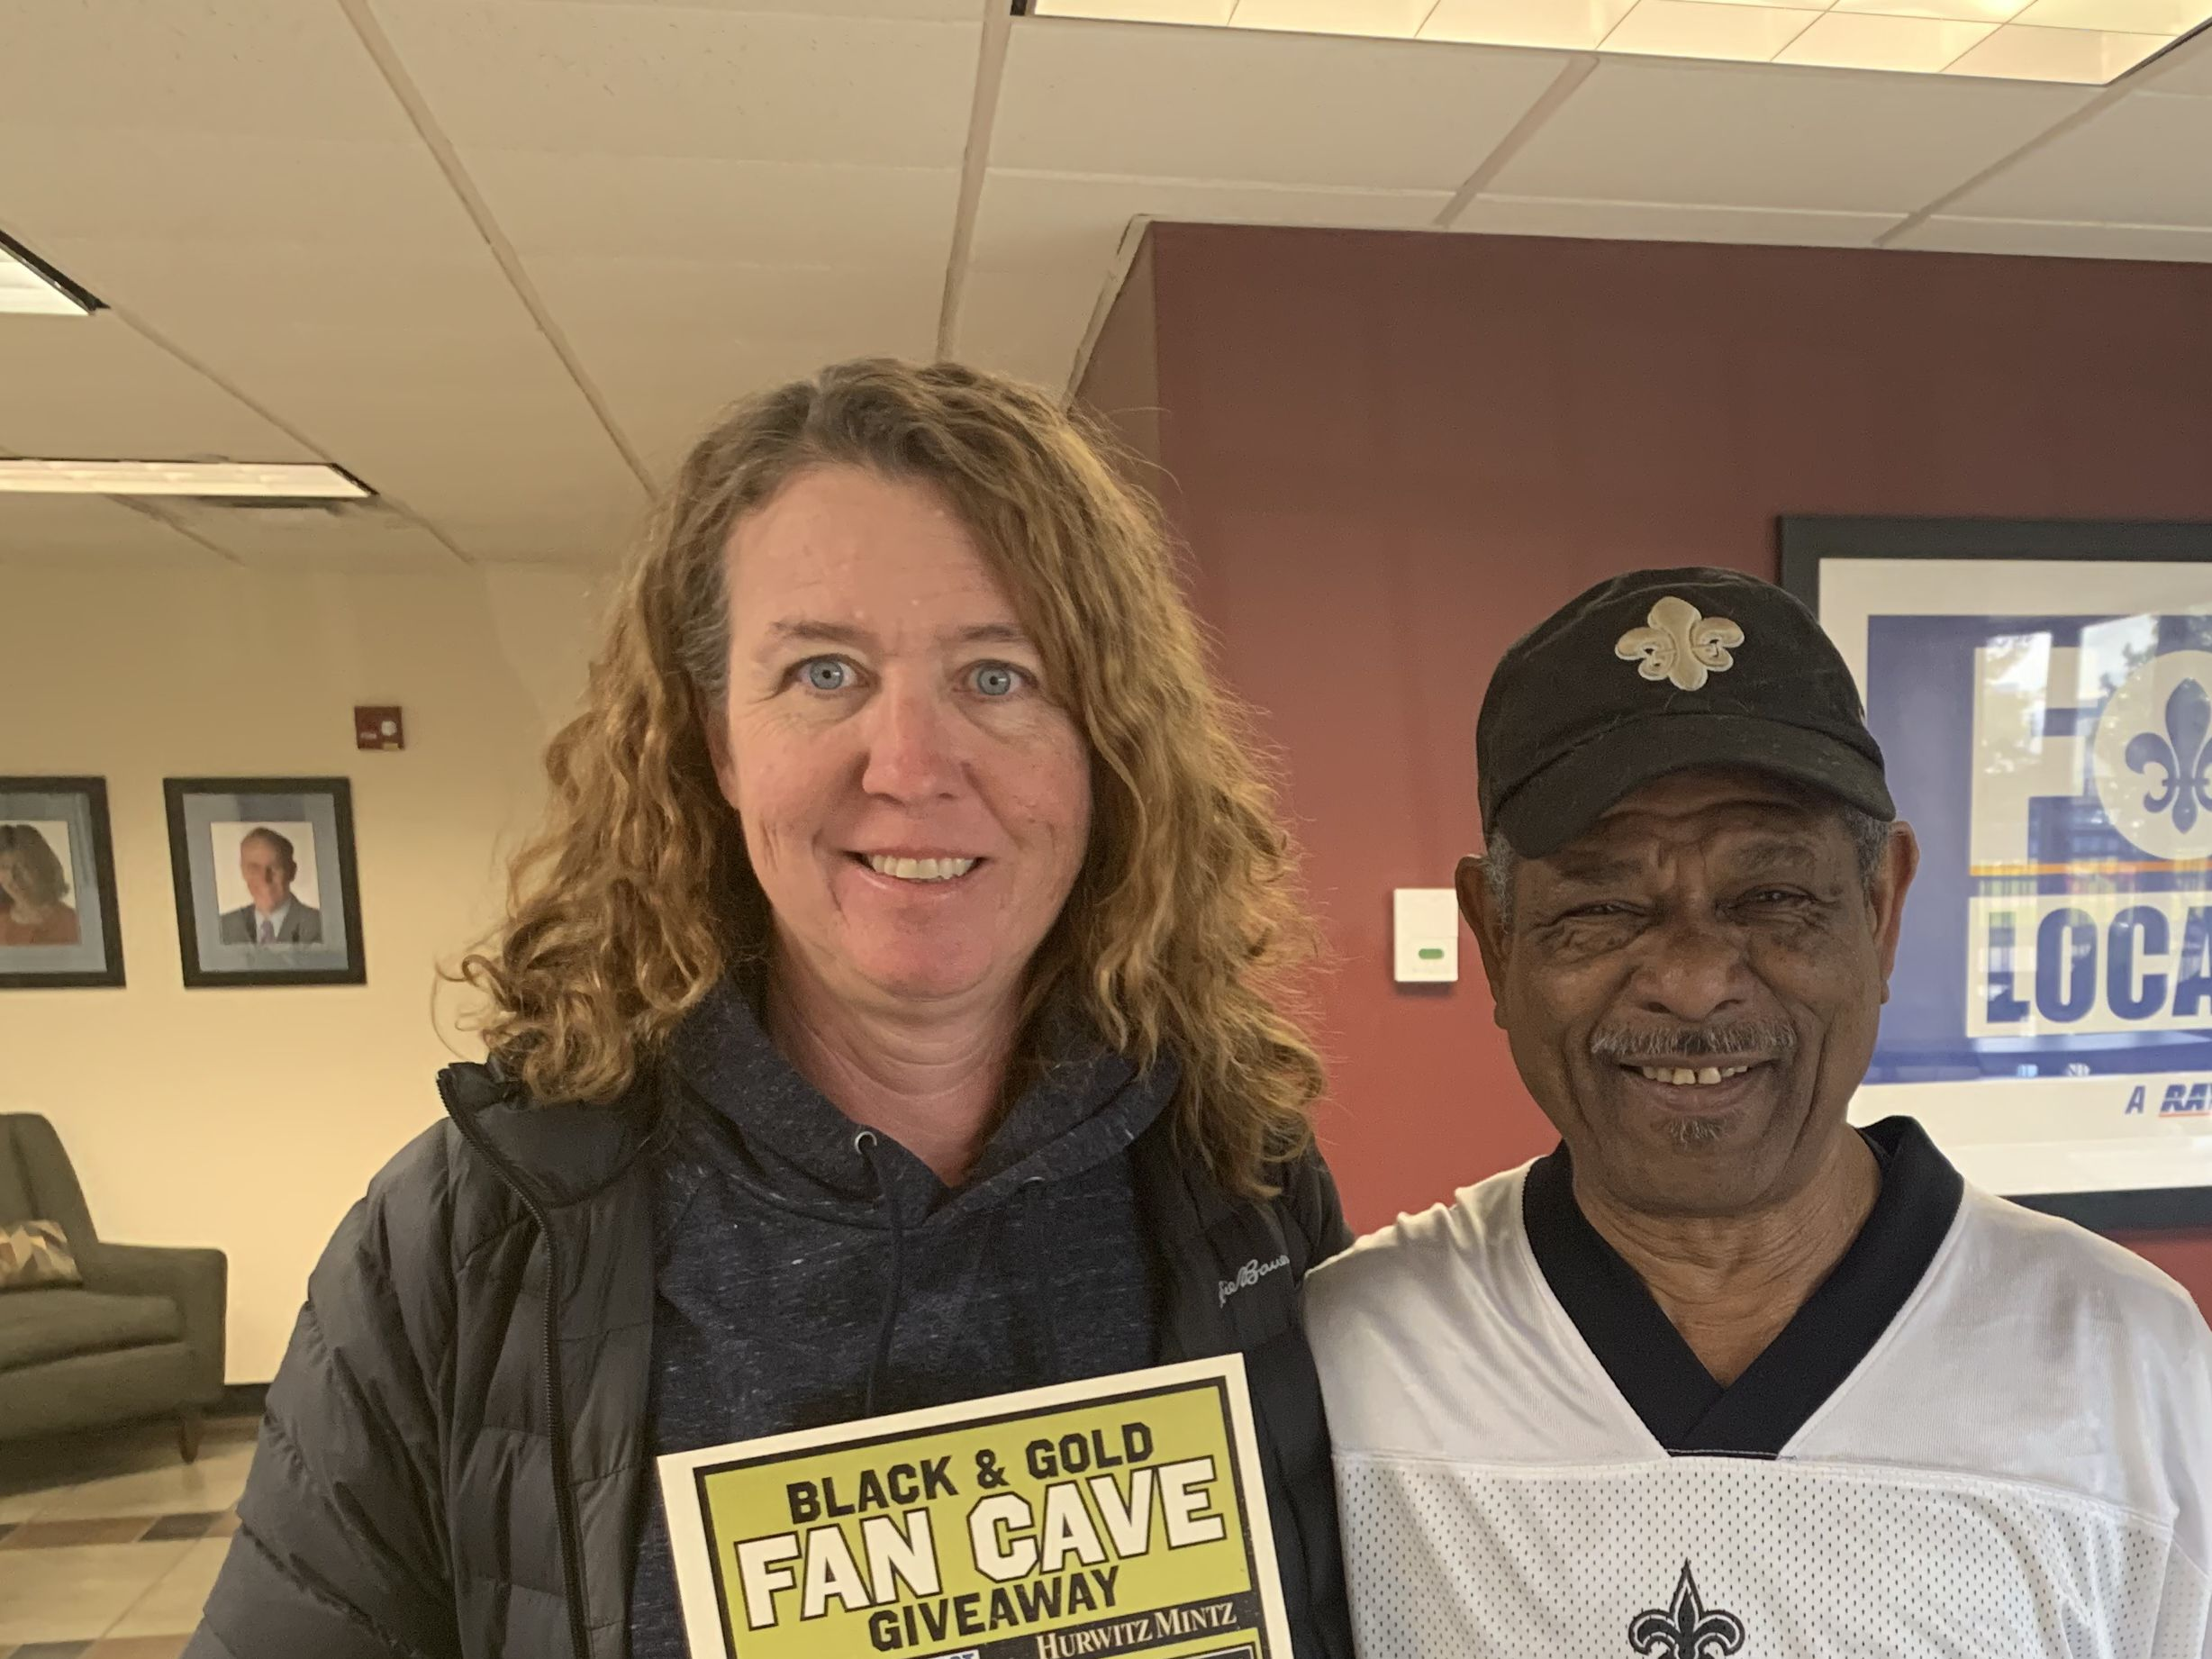 Winner: Hurwitz Mintz New Orleans Saints Fan Cave contest